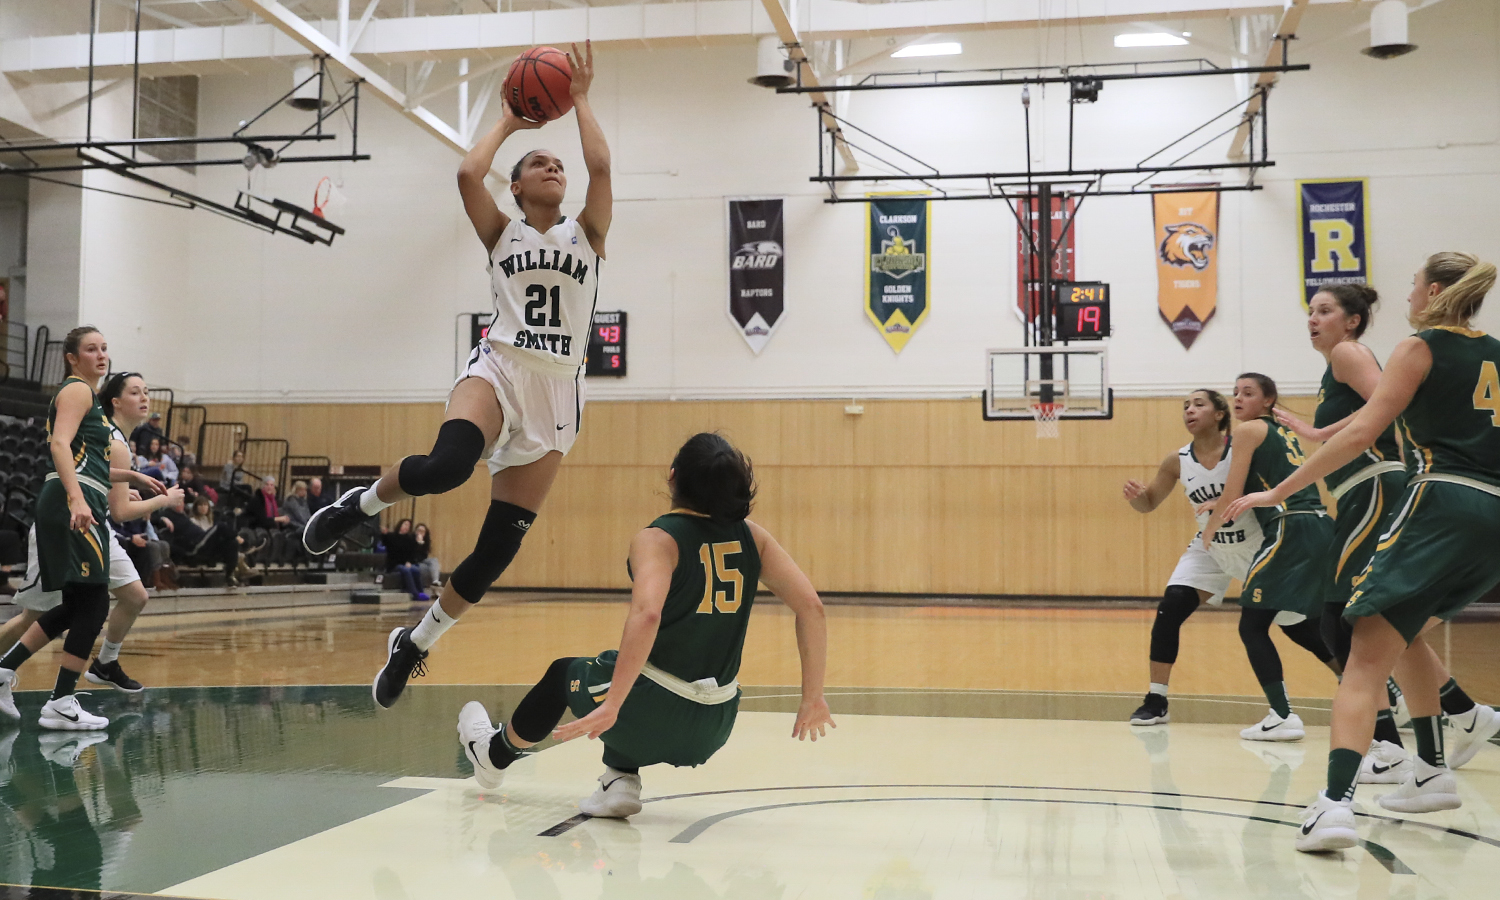 Mia Morrison '19 goes up for a shot during William Smith's 59-56 win over Skidmore College.